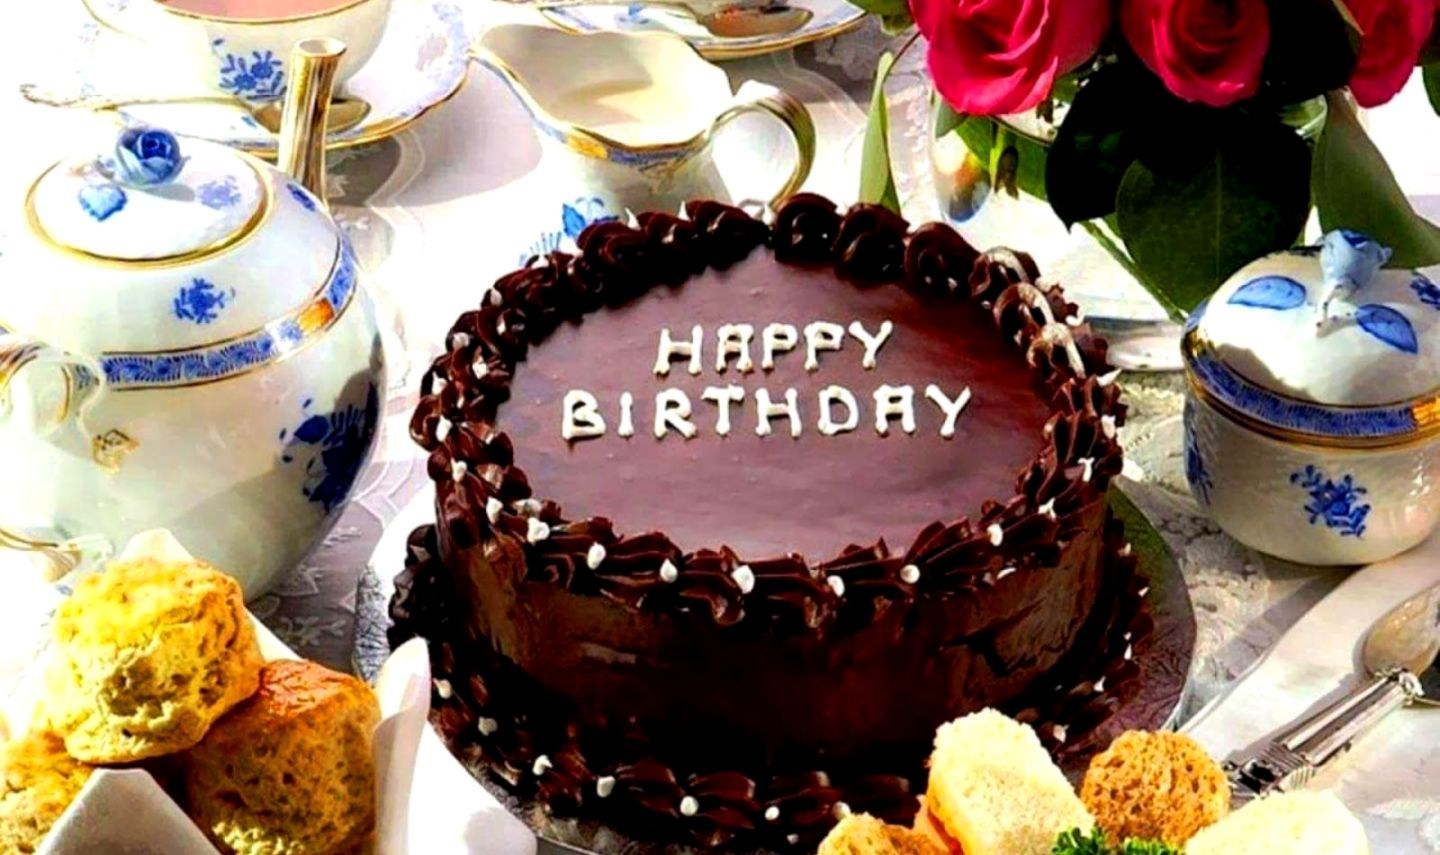 Happy Birthday Cake Hd Pic Happy Birthday Cakes Hd - Happy Birthday Images 2017 , HD Wallpaper & Backgrounds